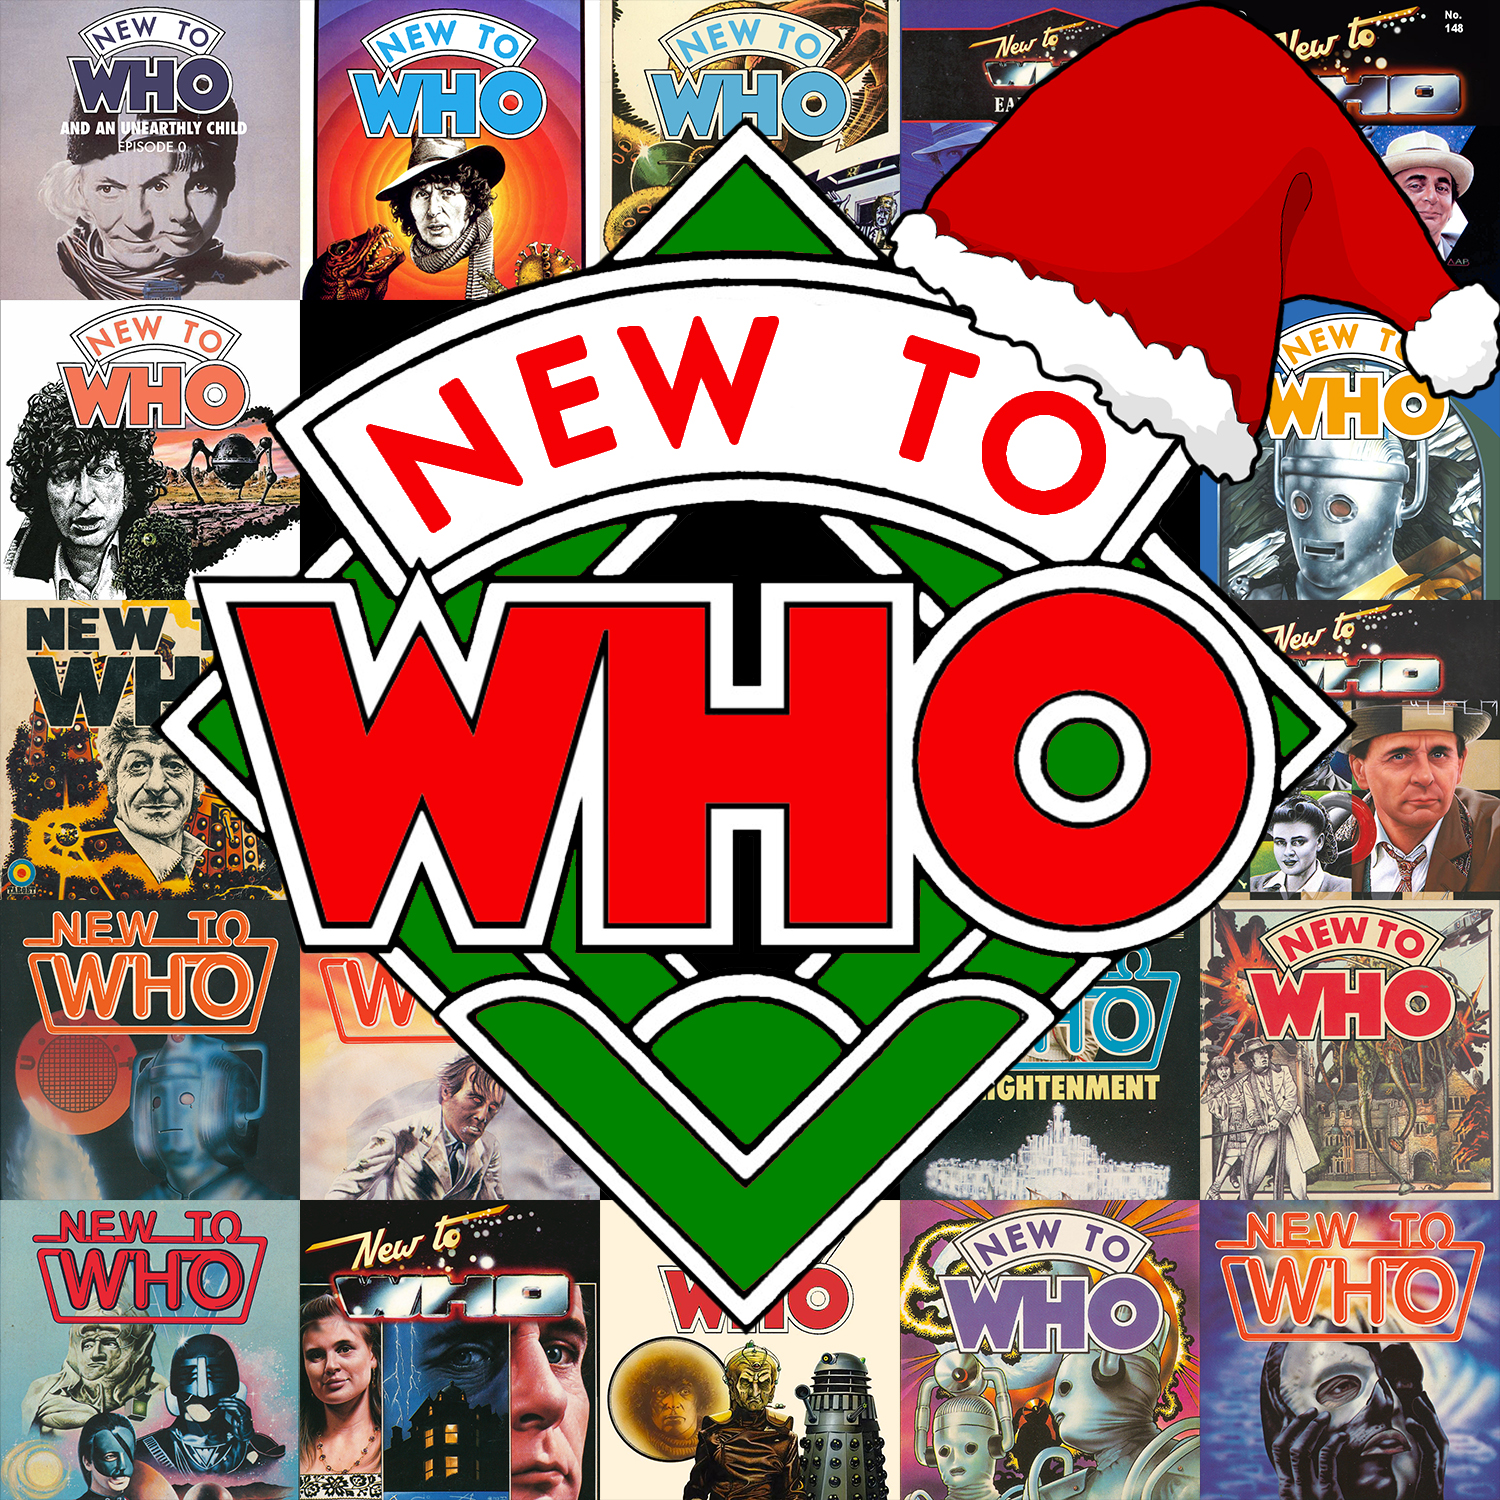 Episode 19 - A New To Who Surprise Christmas Special For Our